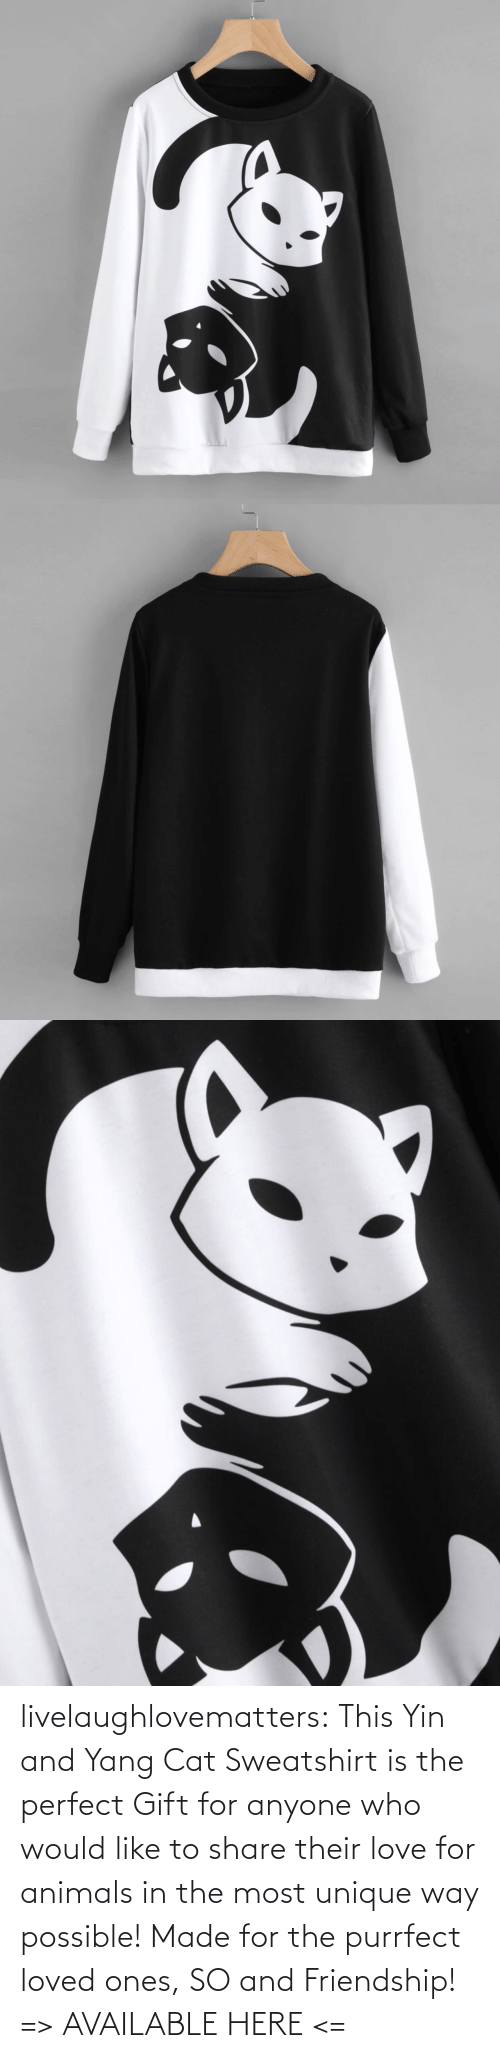 tumblr blog: livelaughlovematters: This Yin and Yang Cat Sweatshirt is the perfect Gift for anyone who would like to share their love for animals in the most unique way possible! Made for the purrfect loved ones, SO and Friendship!  => AVAILABLE HERE <=